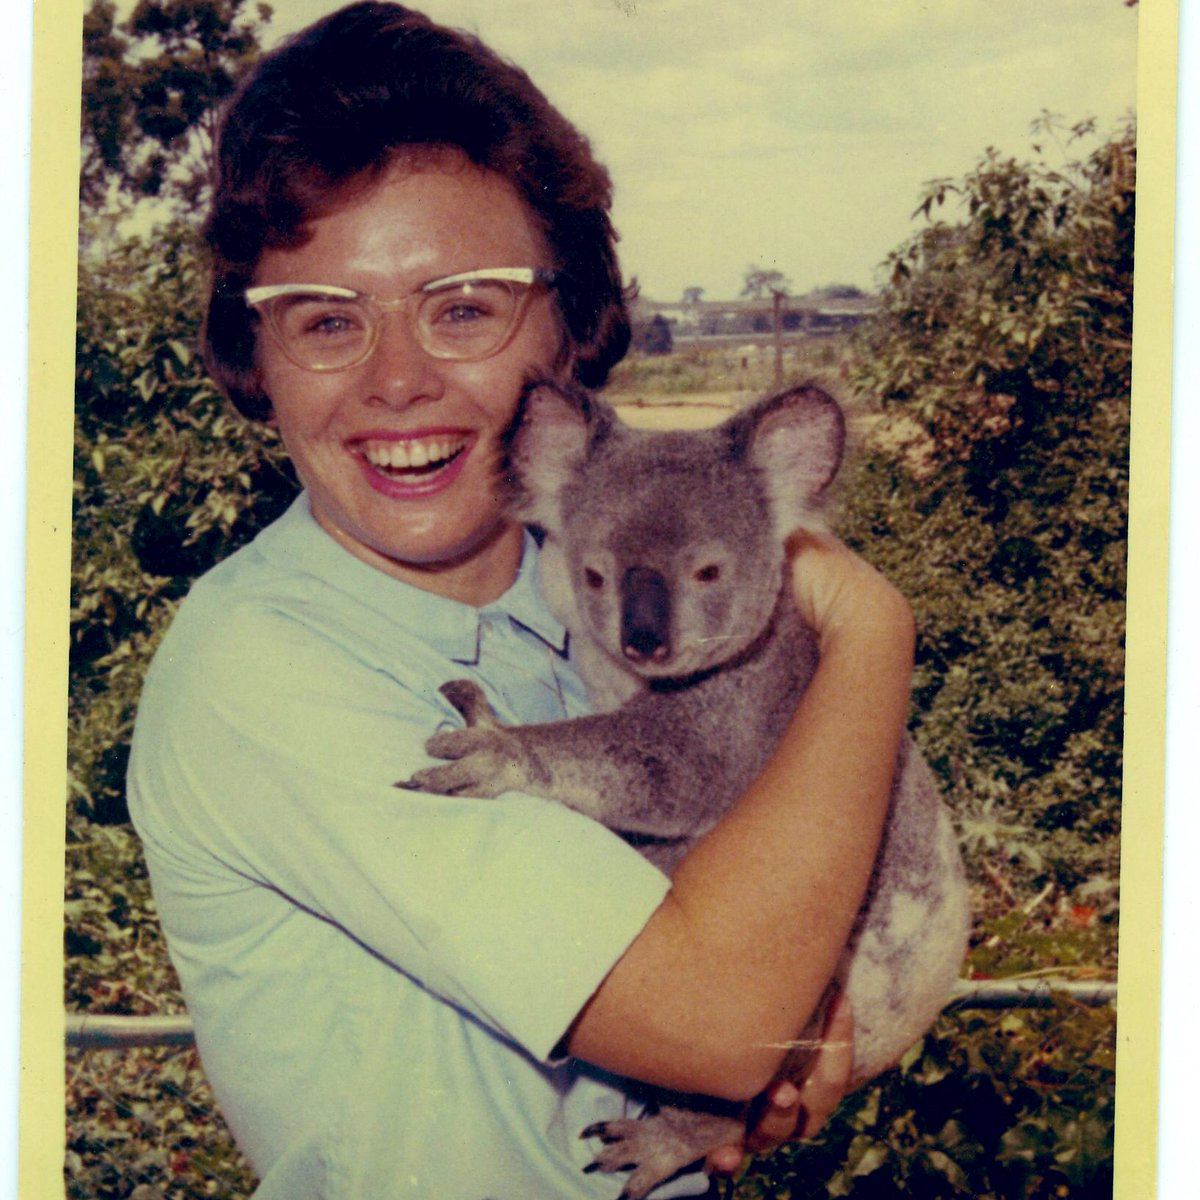 Aussies make the best friends. 🐨 #ThrowbackThursday https://t.co/uAnV1ArAy2